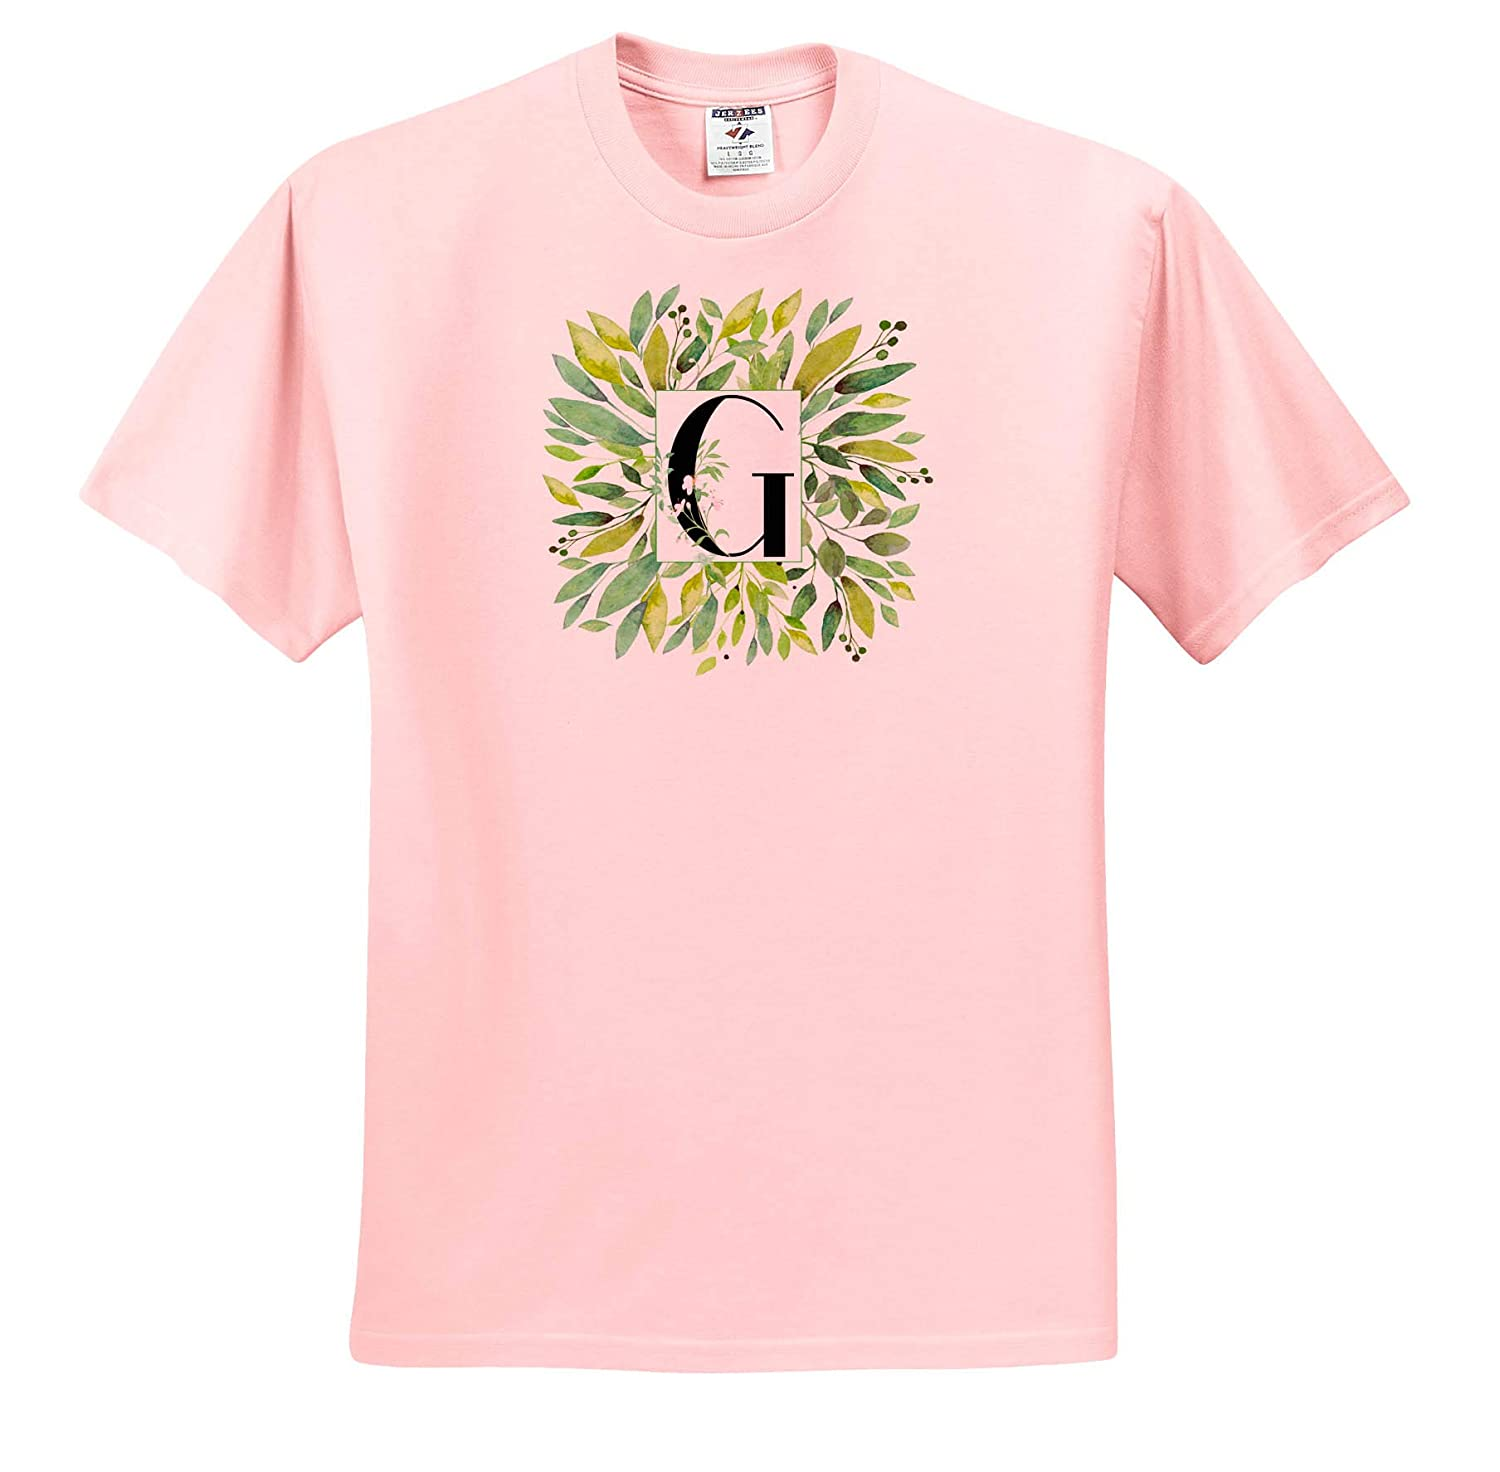 Adult T-Shirt XL ts/_318102 Pretty Image of Watercolor Greenery Leaves Monogram G Monograms 3dRose Anne Marie Baugh